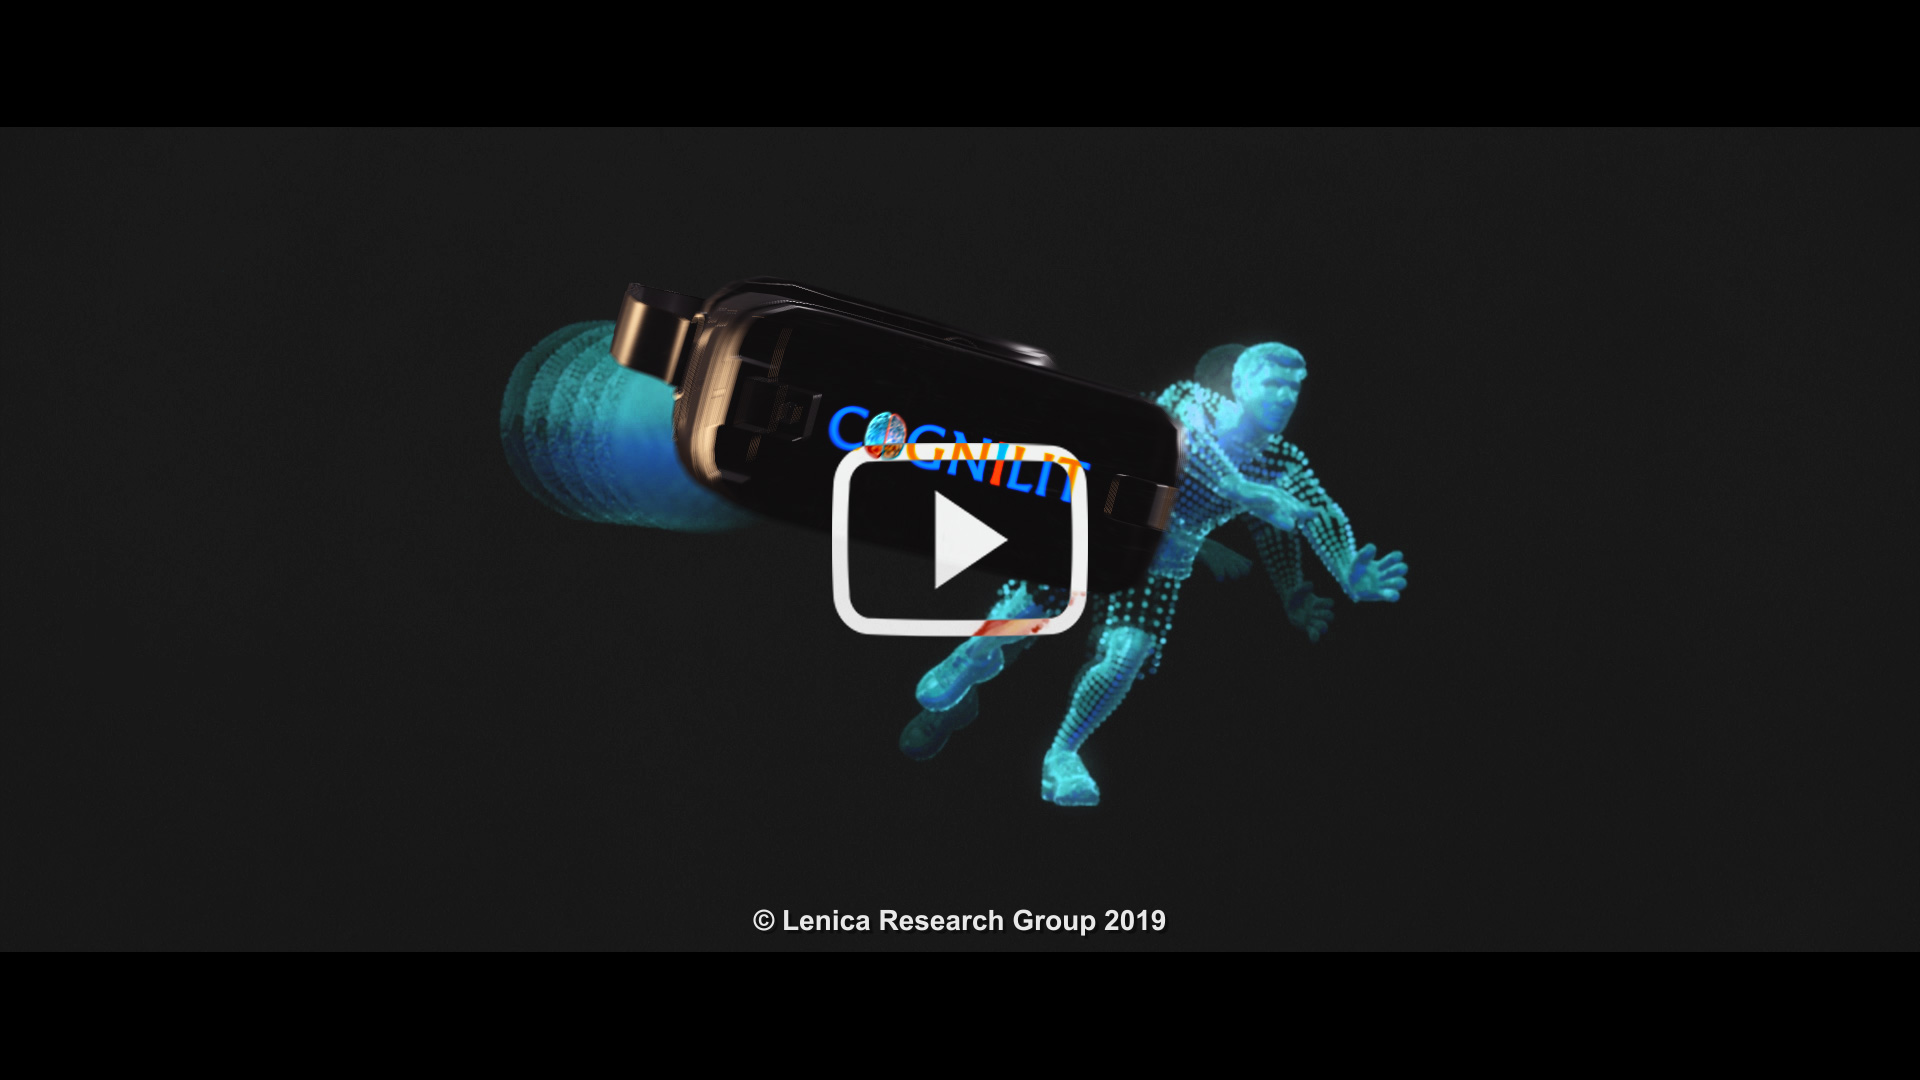 COGNILIT by Lenica Research Group - Video Thumbnail